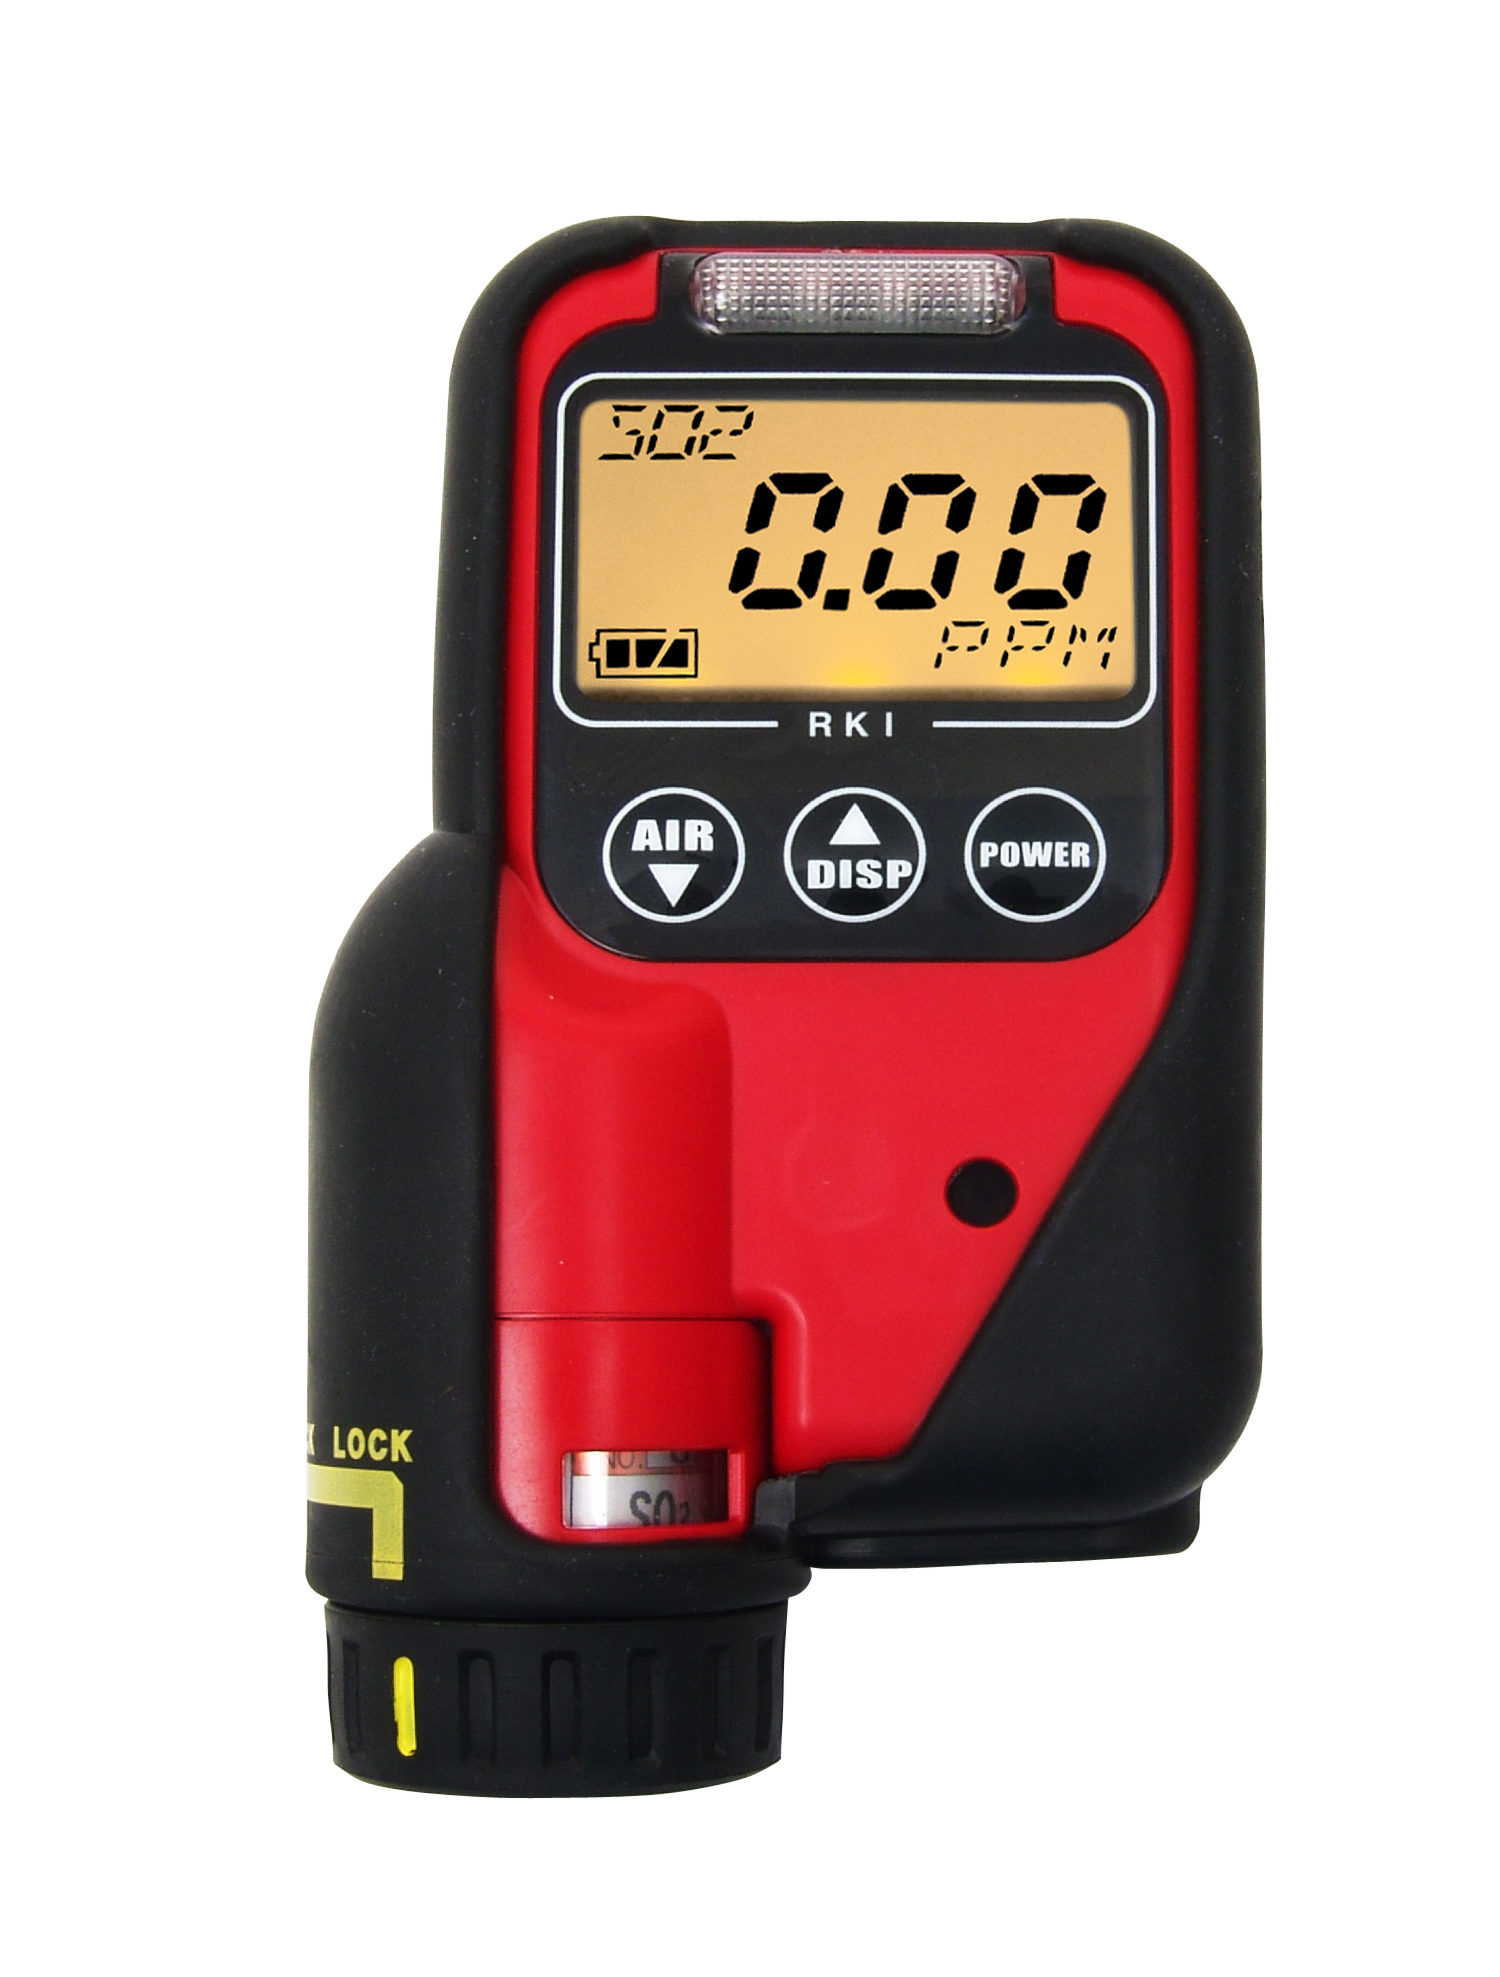 Bw clip 19.5 23.5. Single gas monitors premiersafety